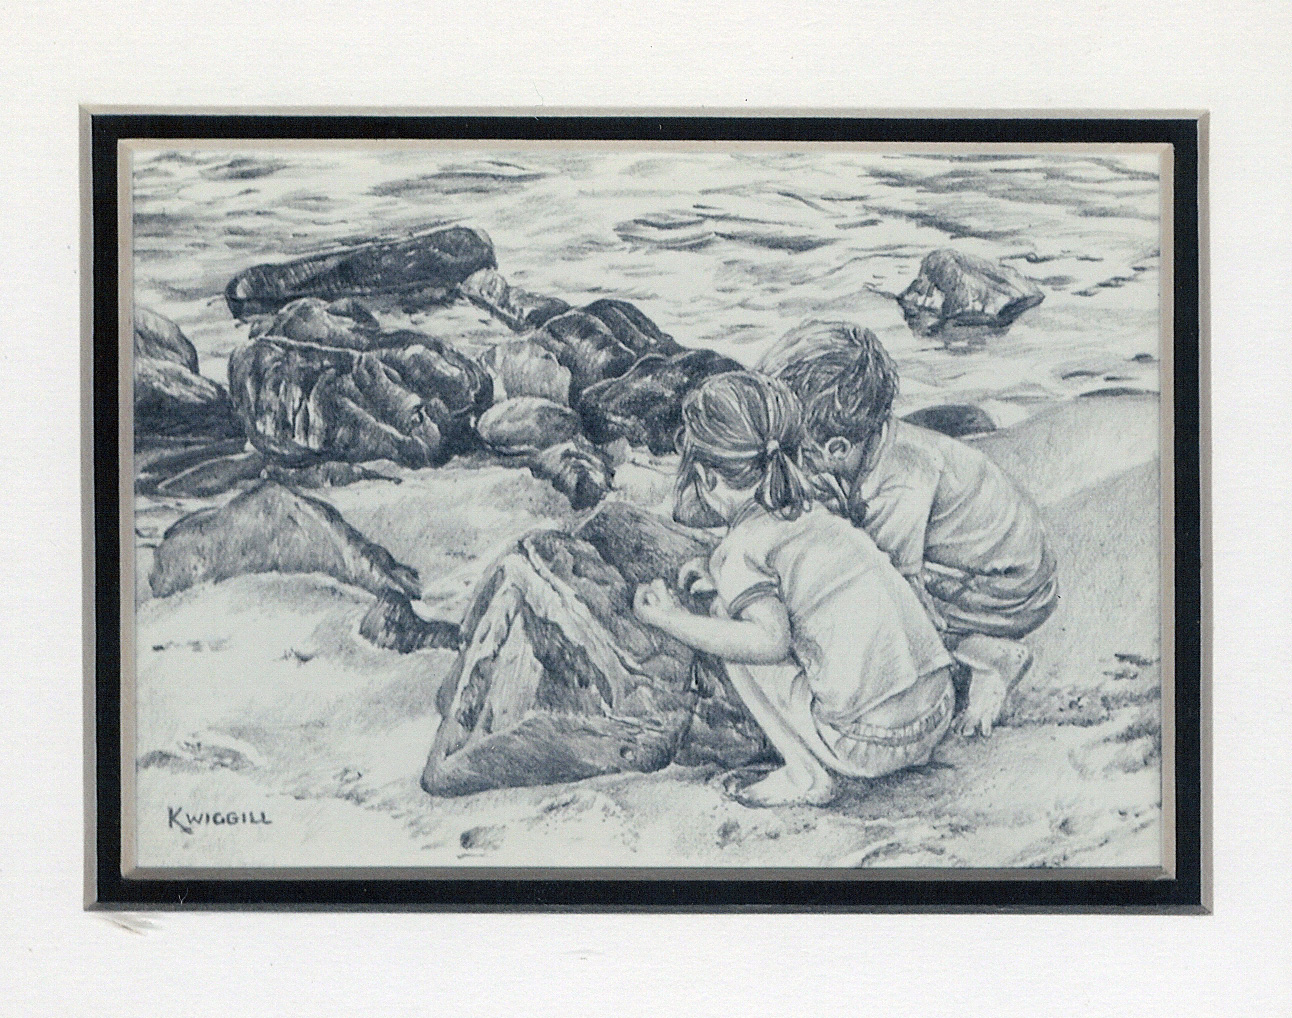 25 Seashells on the Seashore by Karyn Wiggill - Pencil